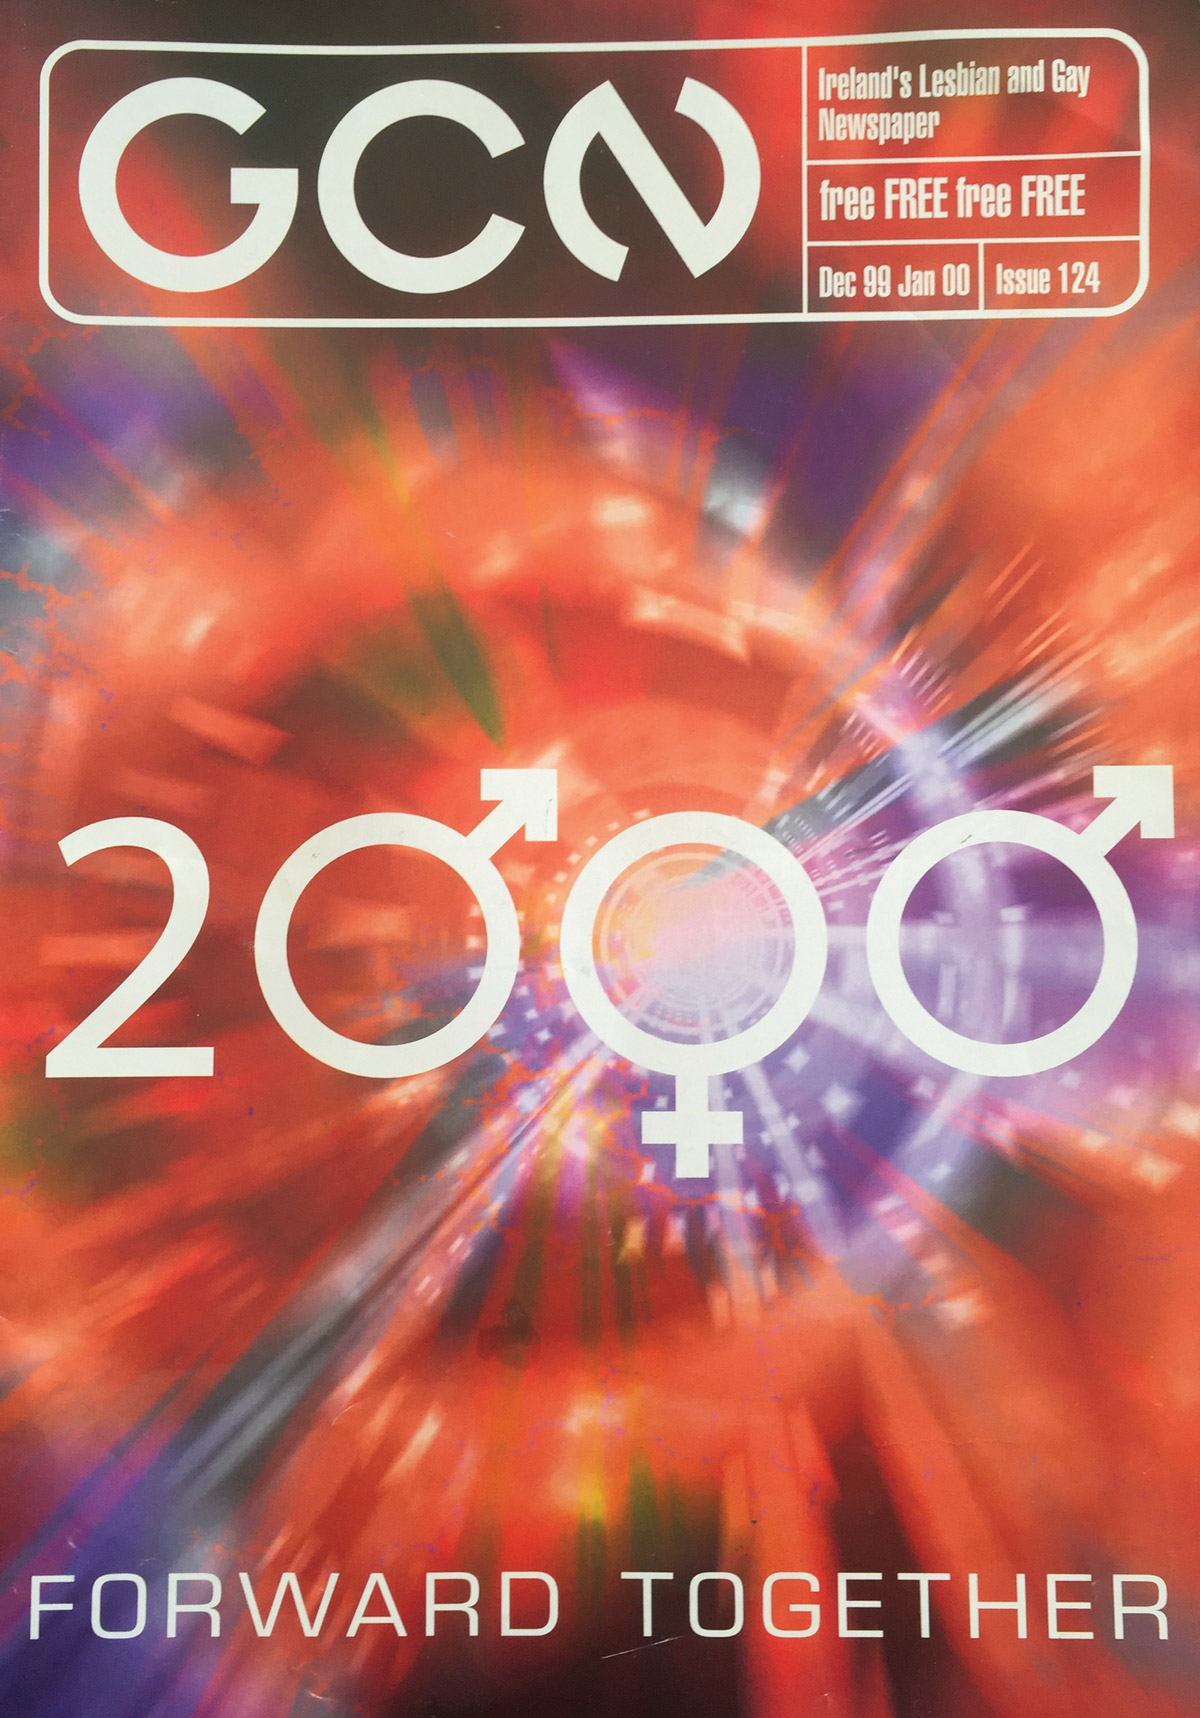 The 1999 Issue in the Evolution of GCN, Ireland's National LGBT Publication with the number 2000 on the cover and a swirl of red and purple